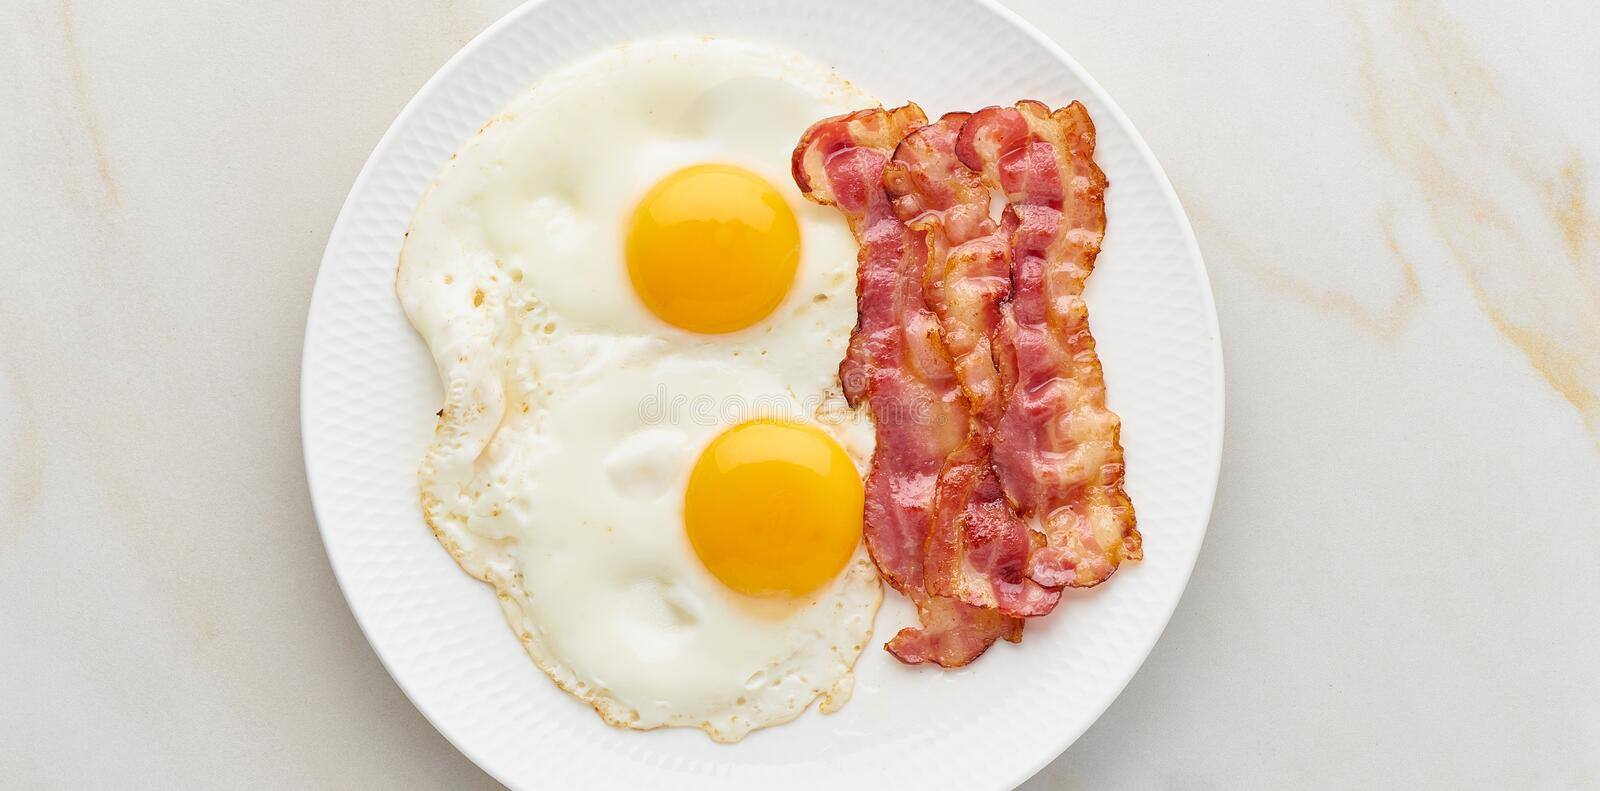 Omelet with bacon top view foodmap ketogenic diet banner. Fried eggs with bacon, foodmap ketogenic keto diet, top view, banner royalty free stock photos